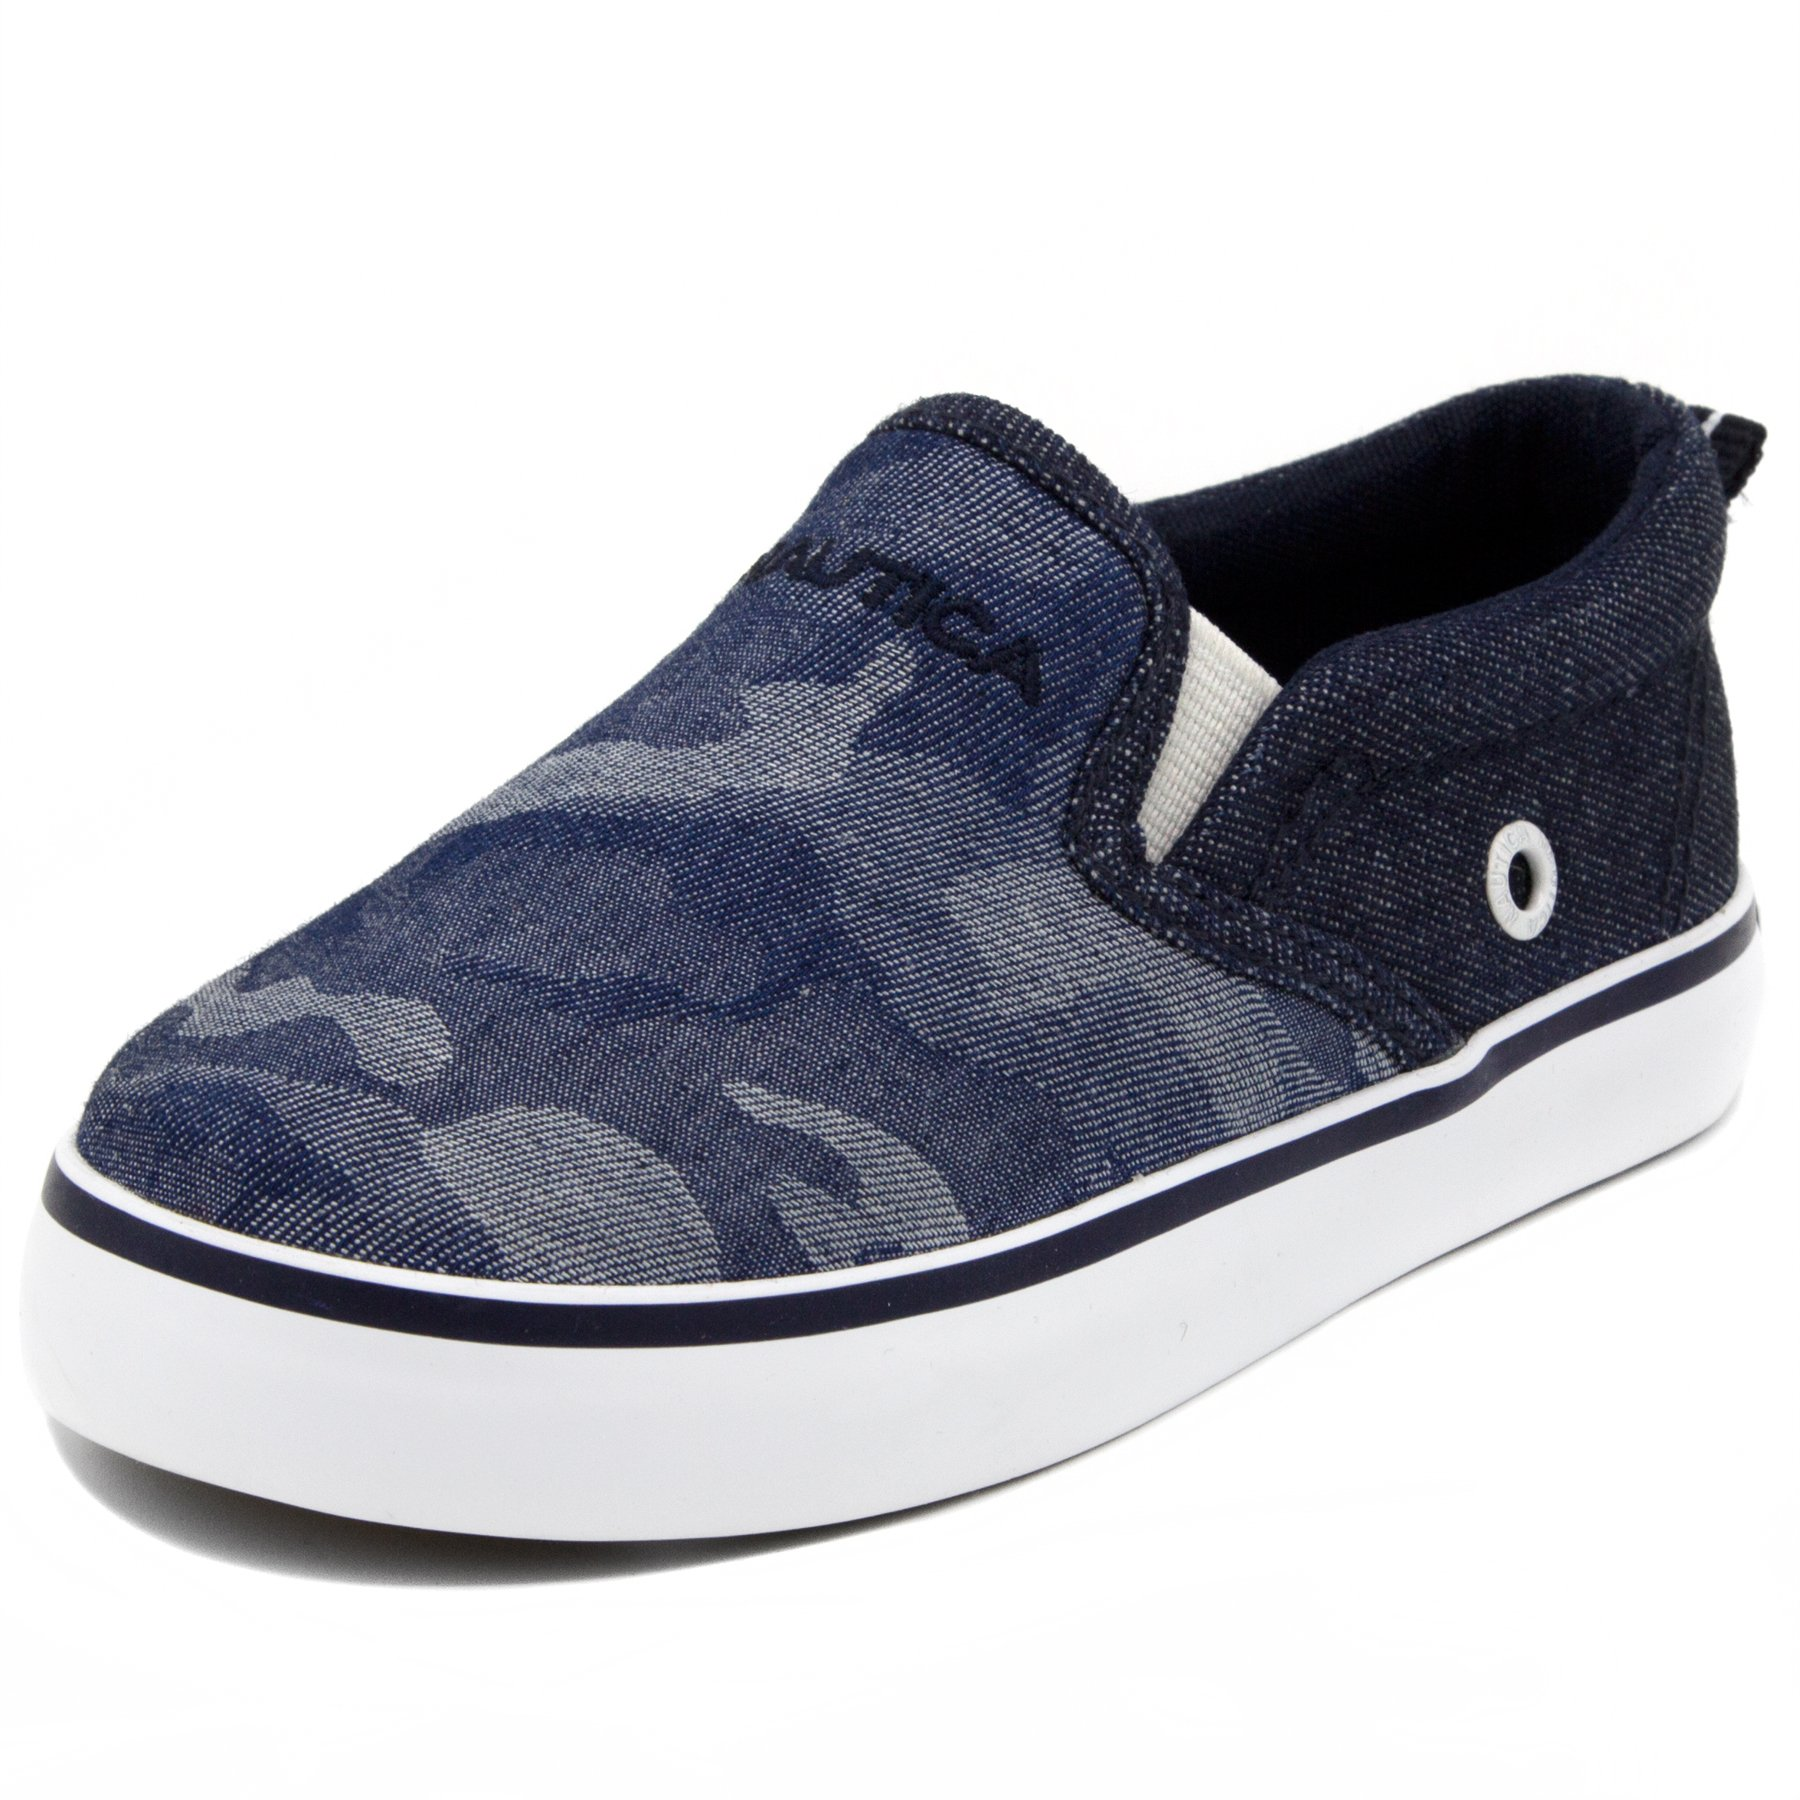 Nautica Akeley Toddler Canvas Sneaker Slip-On Casual Shoes-Denim Camo-5